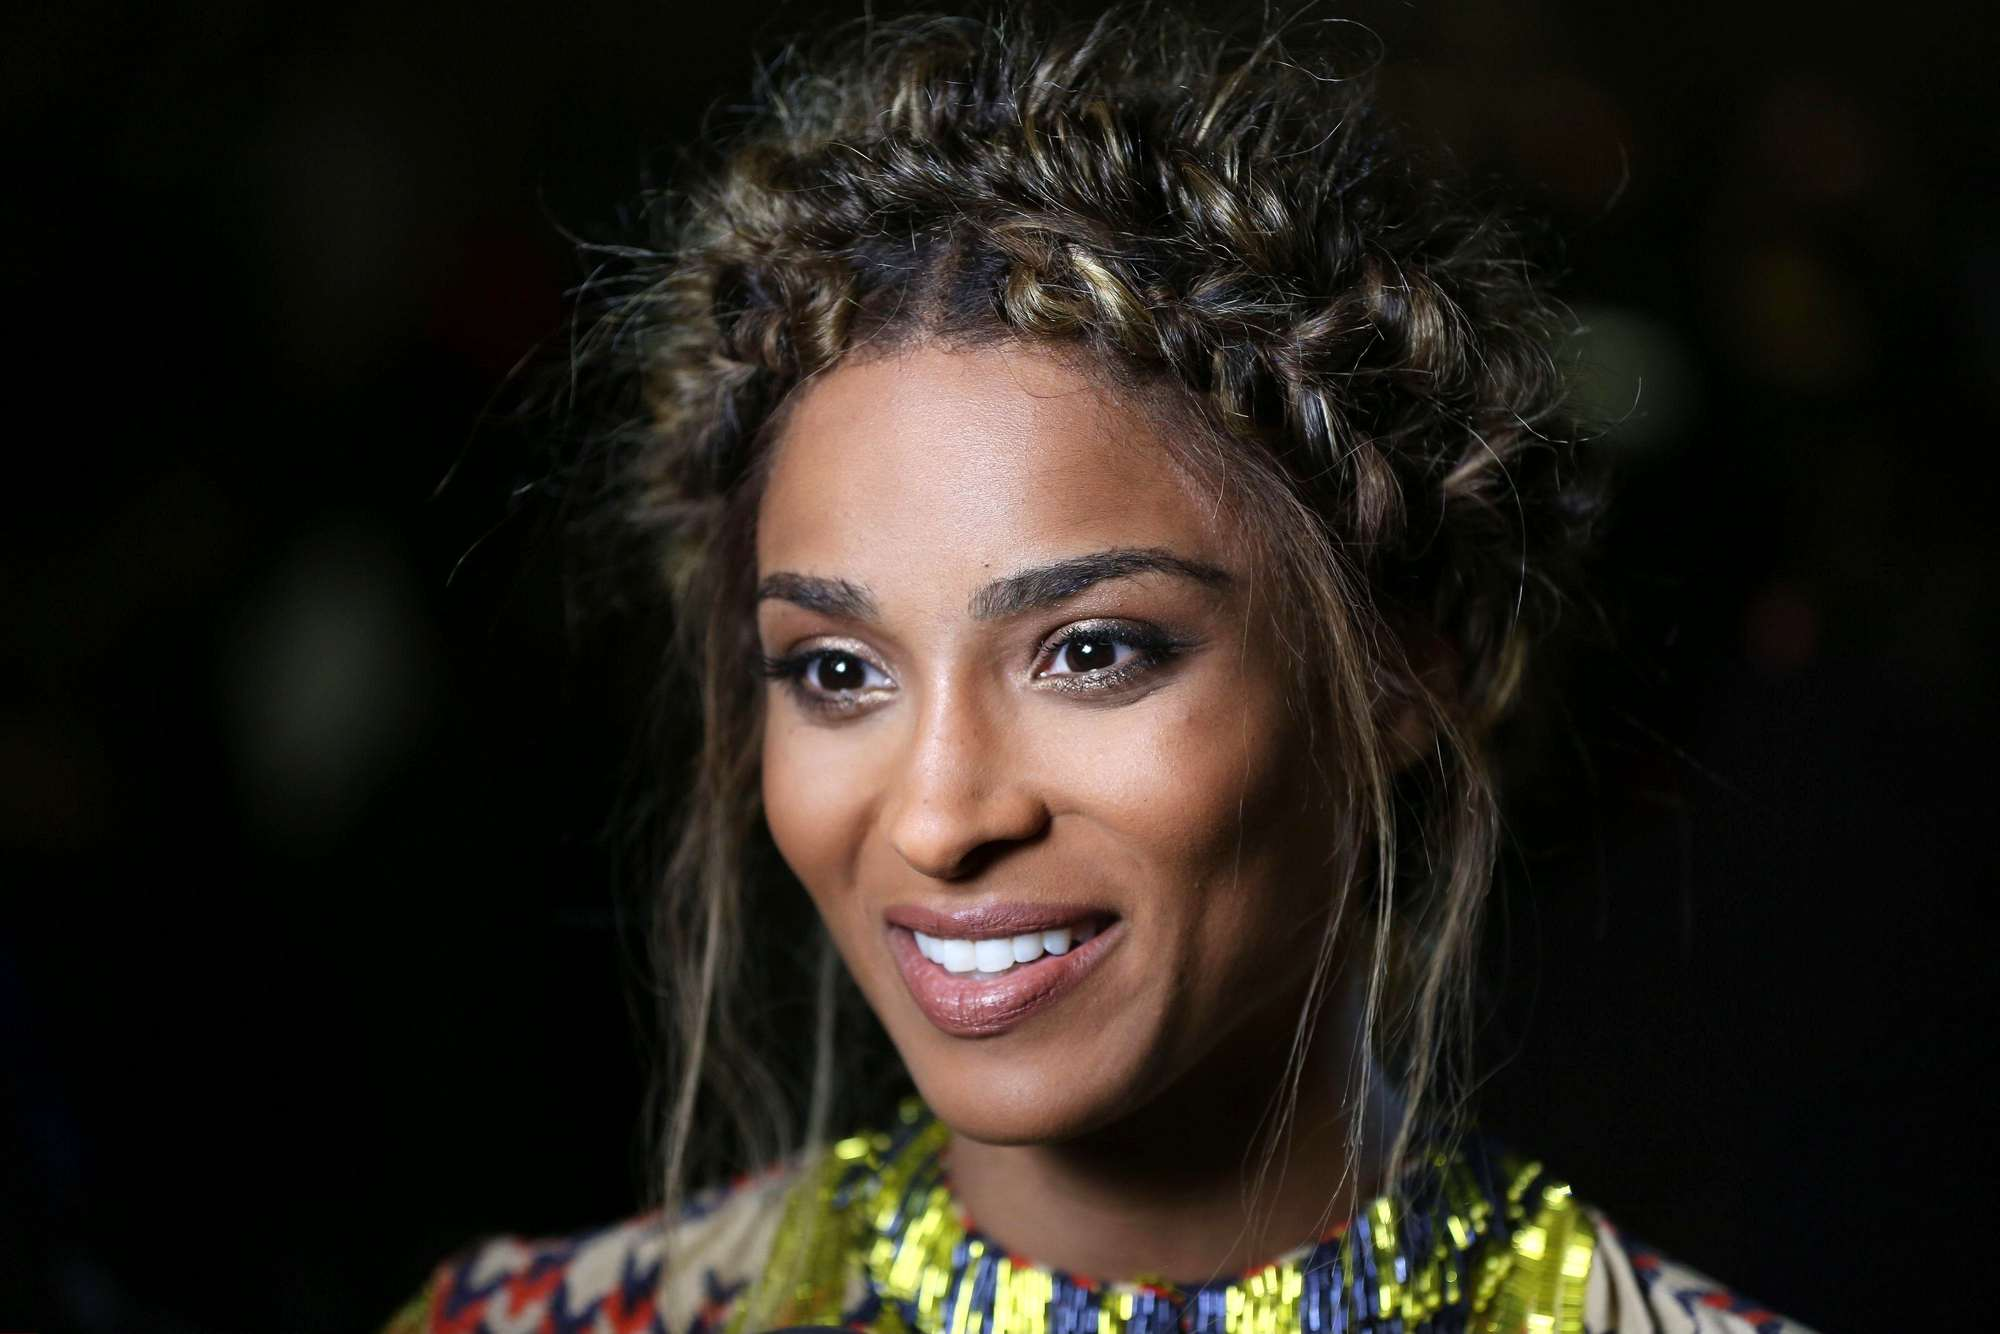 front view of ciara with medium brown hair in halo braid